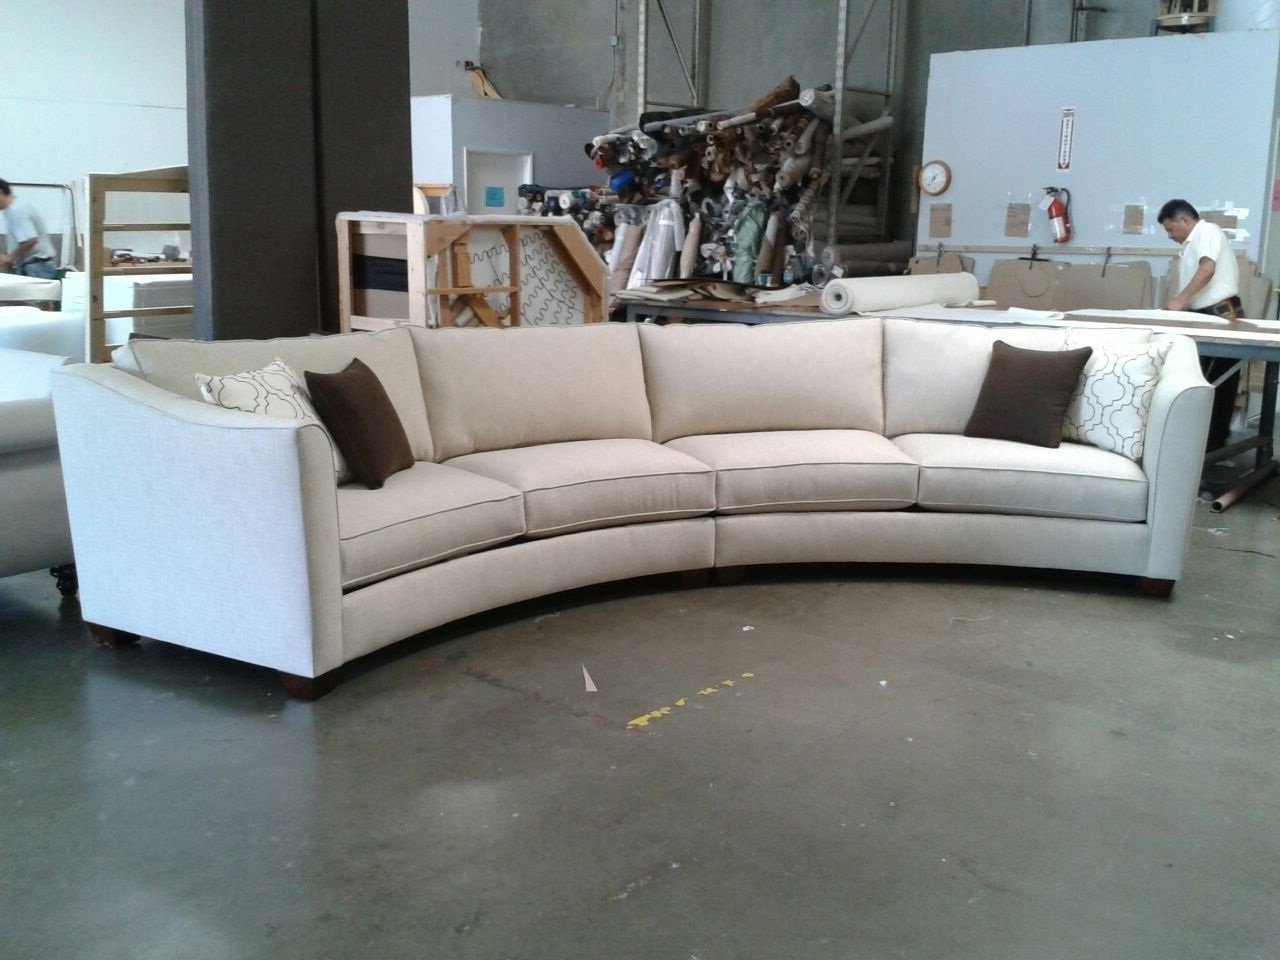 2020 Best Of Round Sectional Sofas